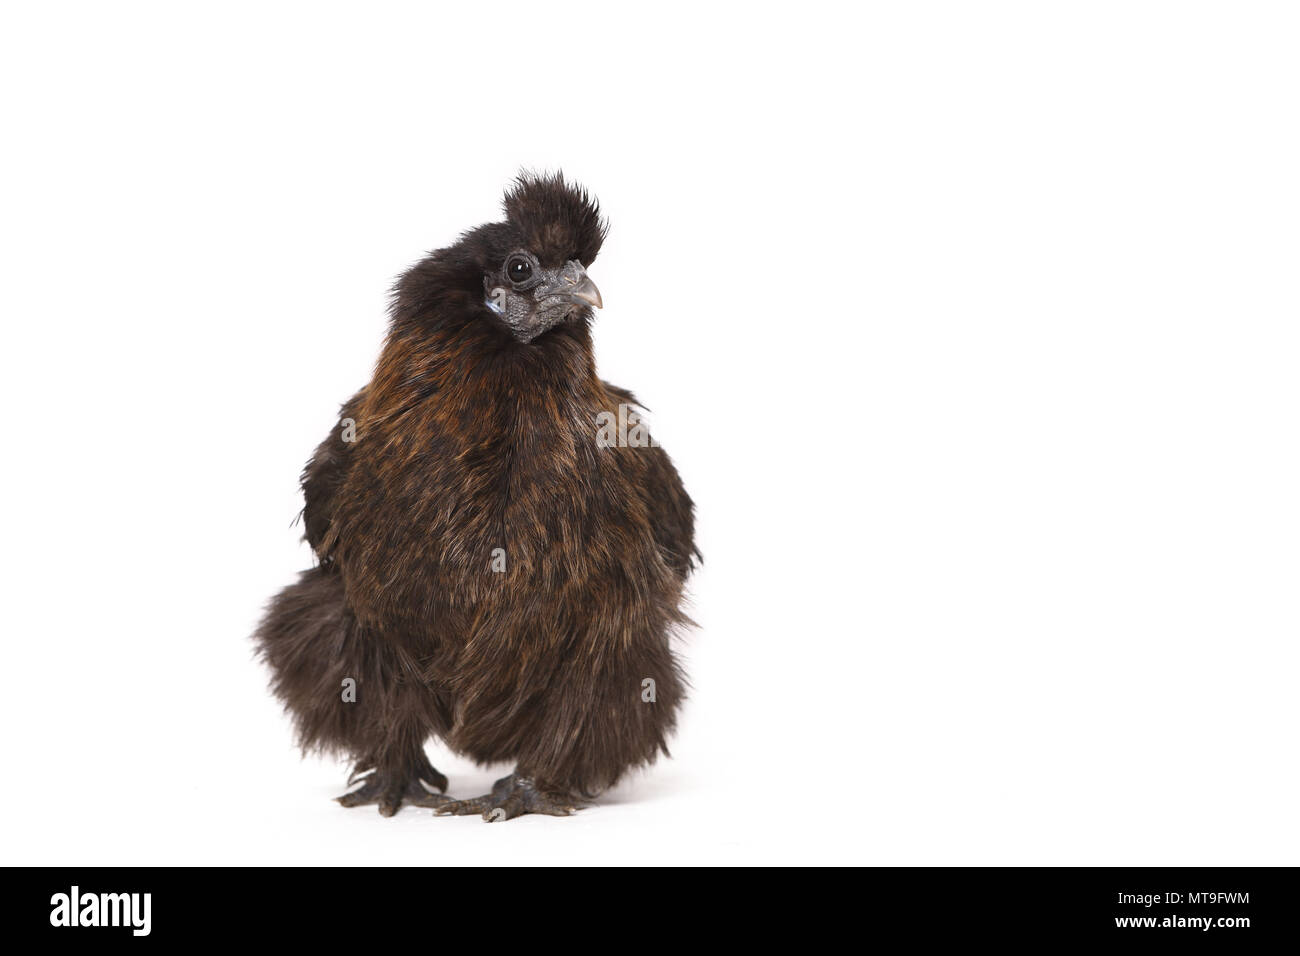 Domestic Chicken, Silkie, Silky. Adult standing, seen head-on. Studio picture against a white background - Stock Image